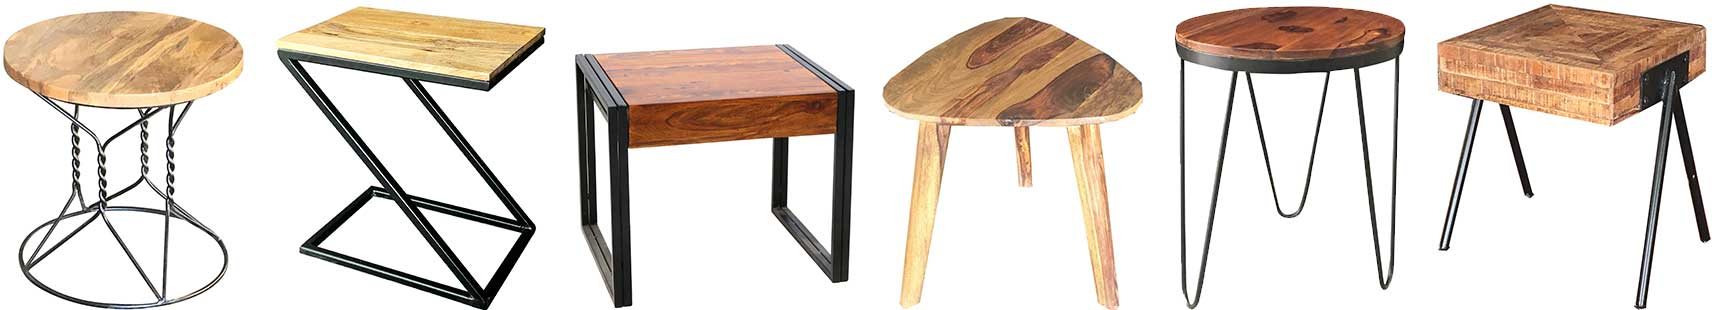 Shopping For Furniture Online & The Benefits Of It.. | Furniture Supplies UK